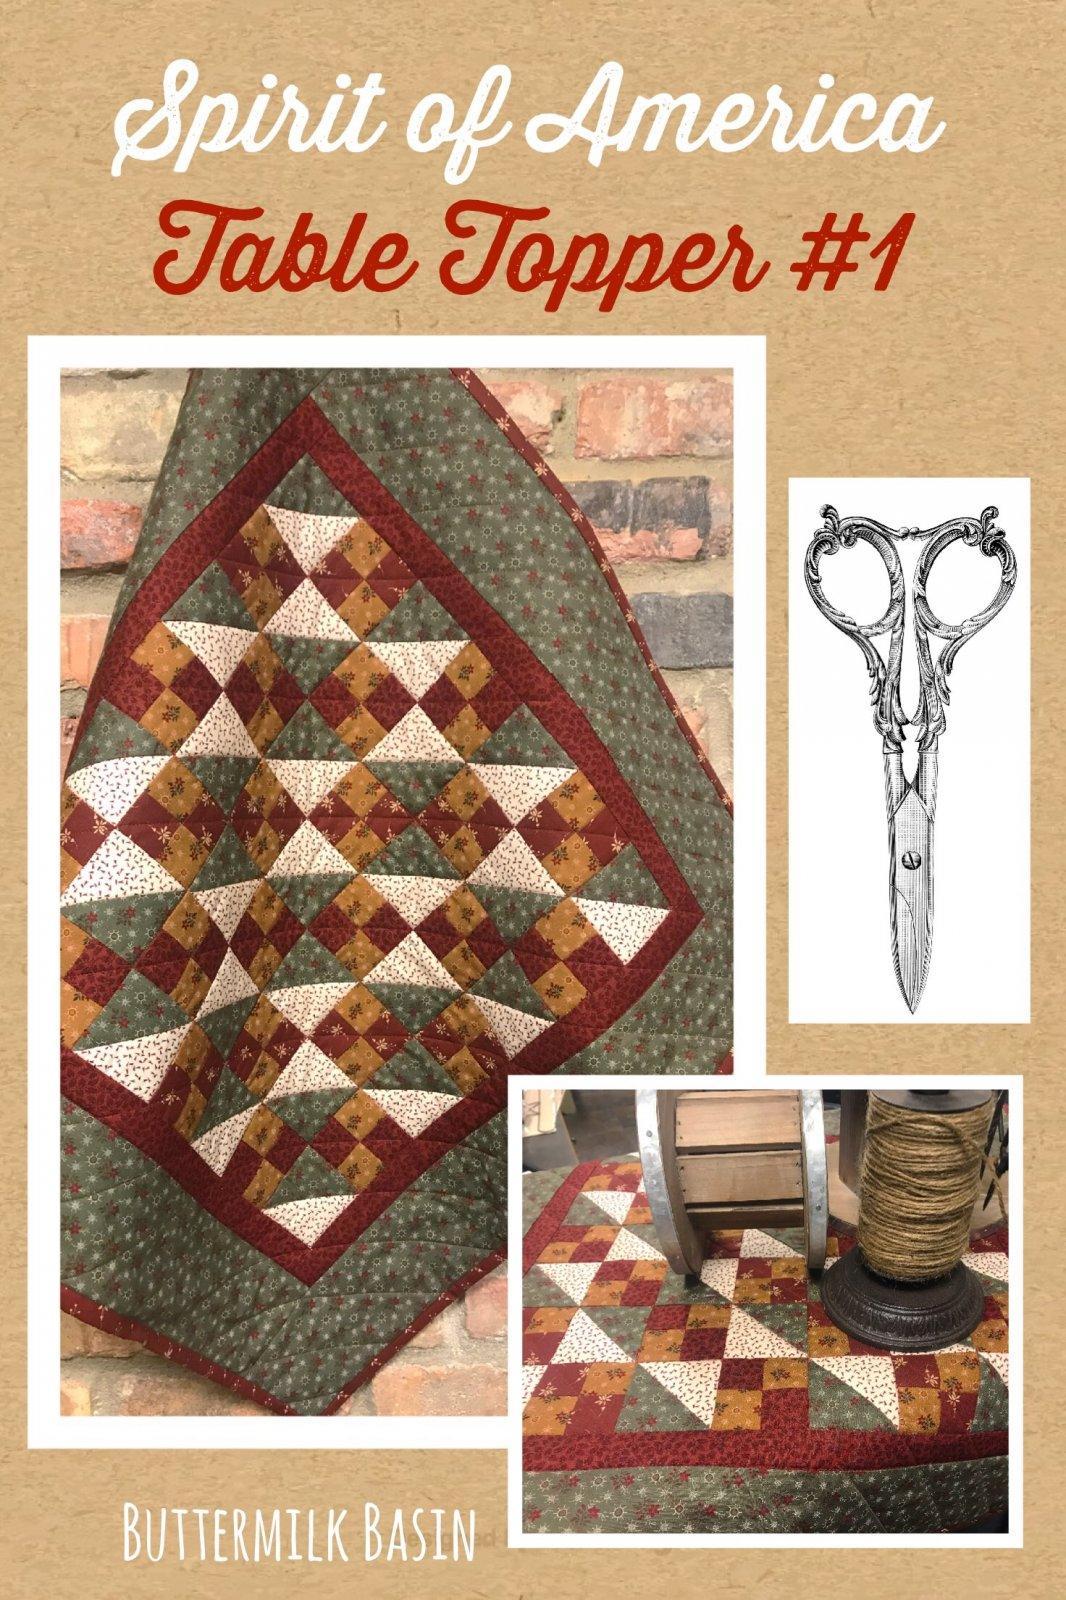 Spirit of America Table Topper #1 Pattern and Kit